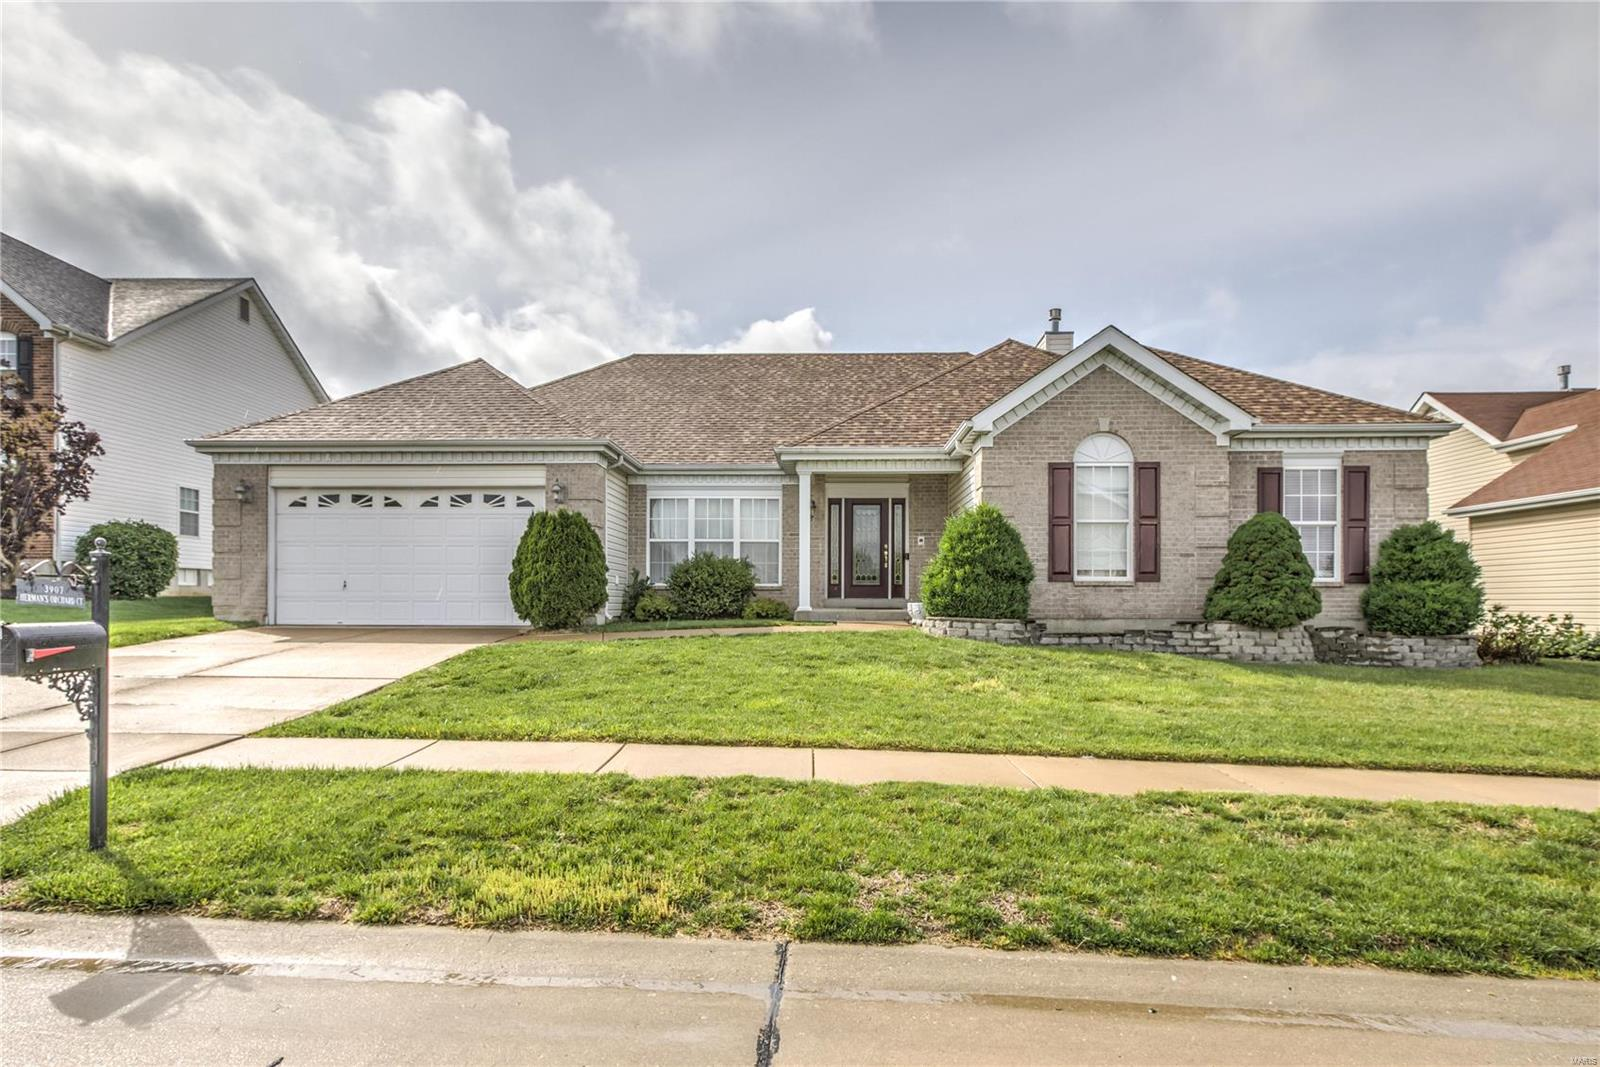 3907 Hermans Orchard Ct Property Photo - Florissant, MO real estate listing